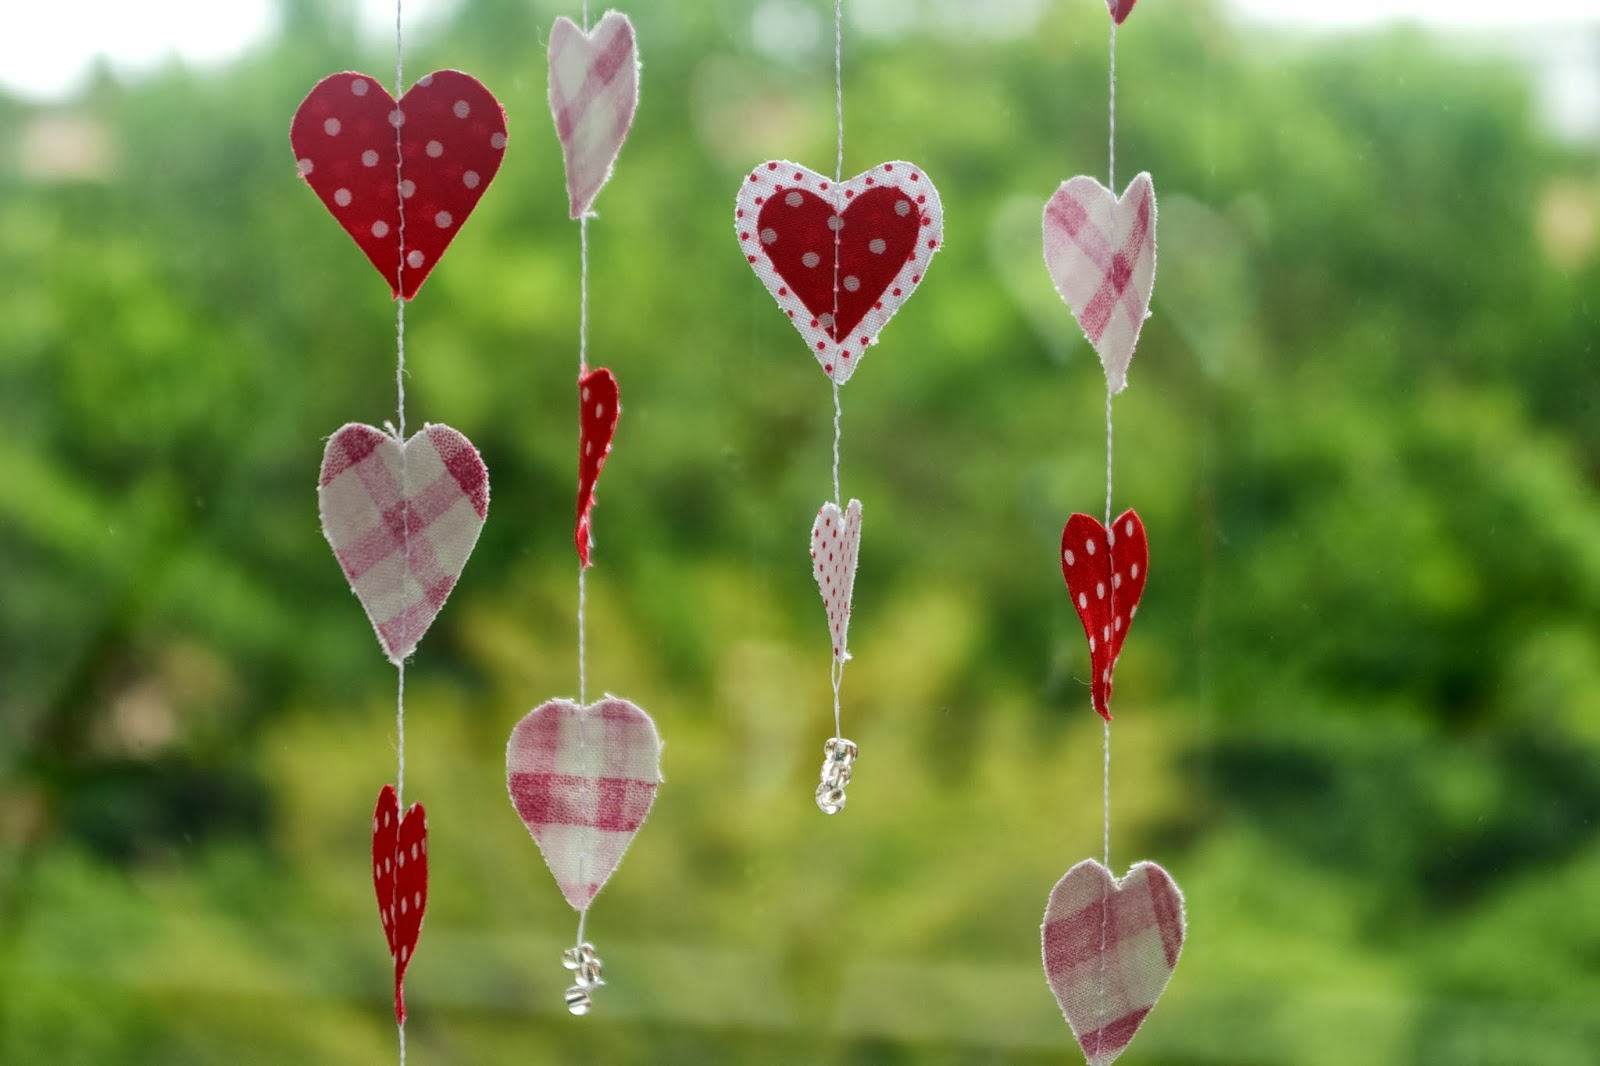 http://stitchingnotes.blogspot.com/2014/01/tutorial-fabric-hearts-garland.html